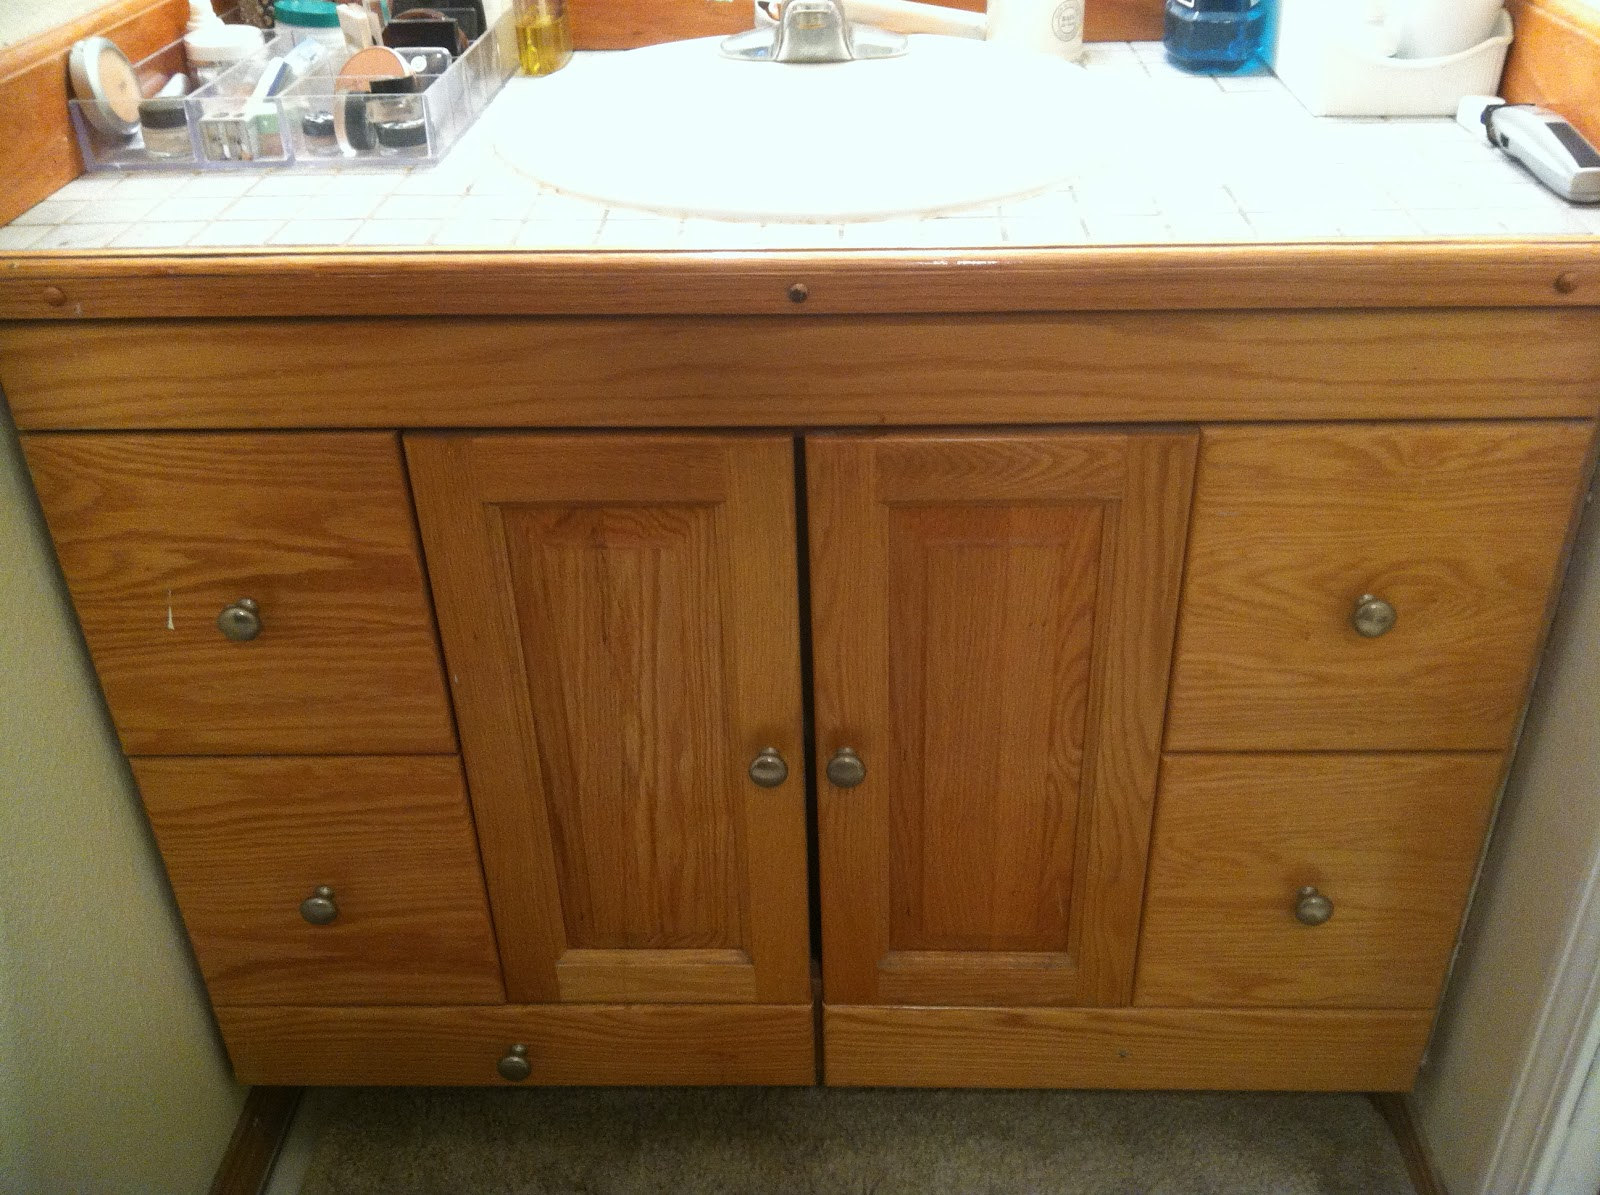 Fresh Redesign: Bathroom Vanity Re-Design For Under $60! Staining